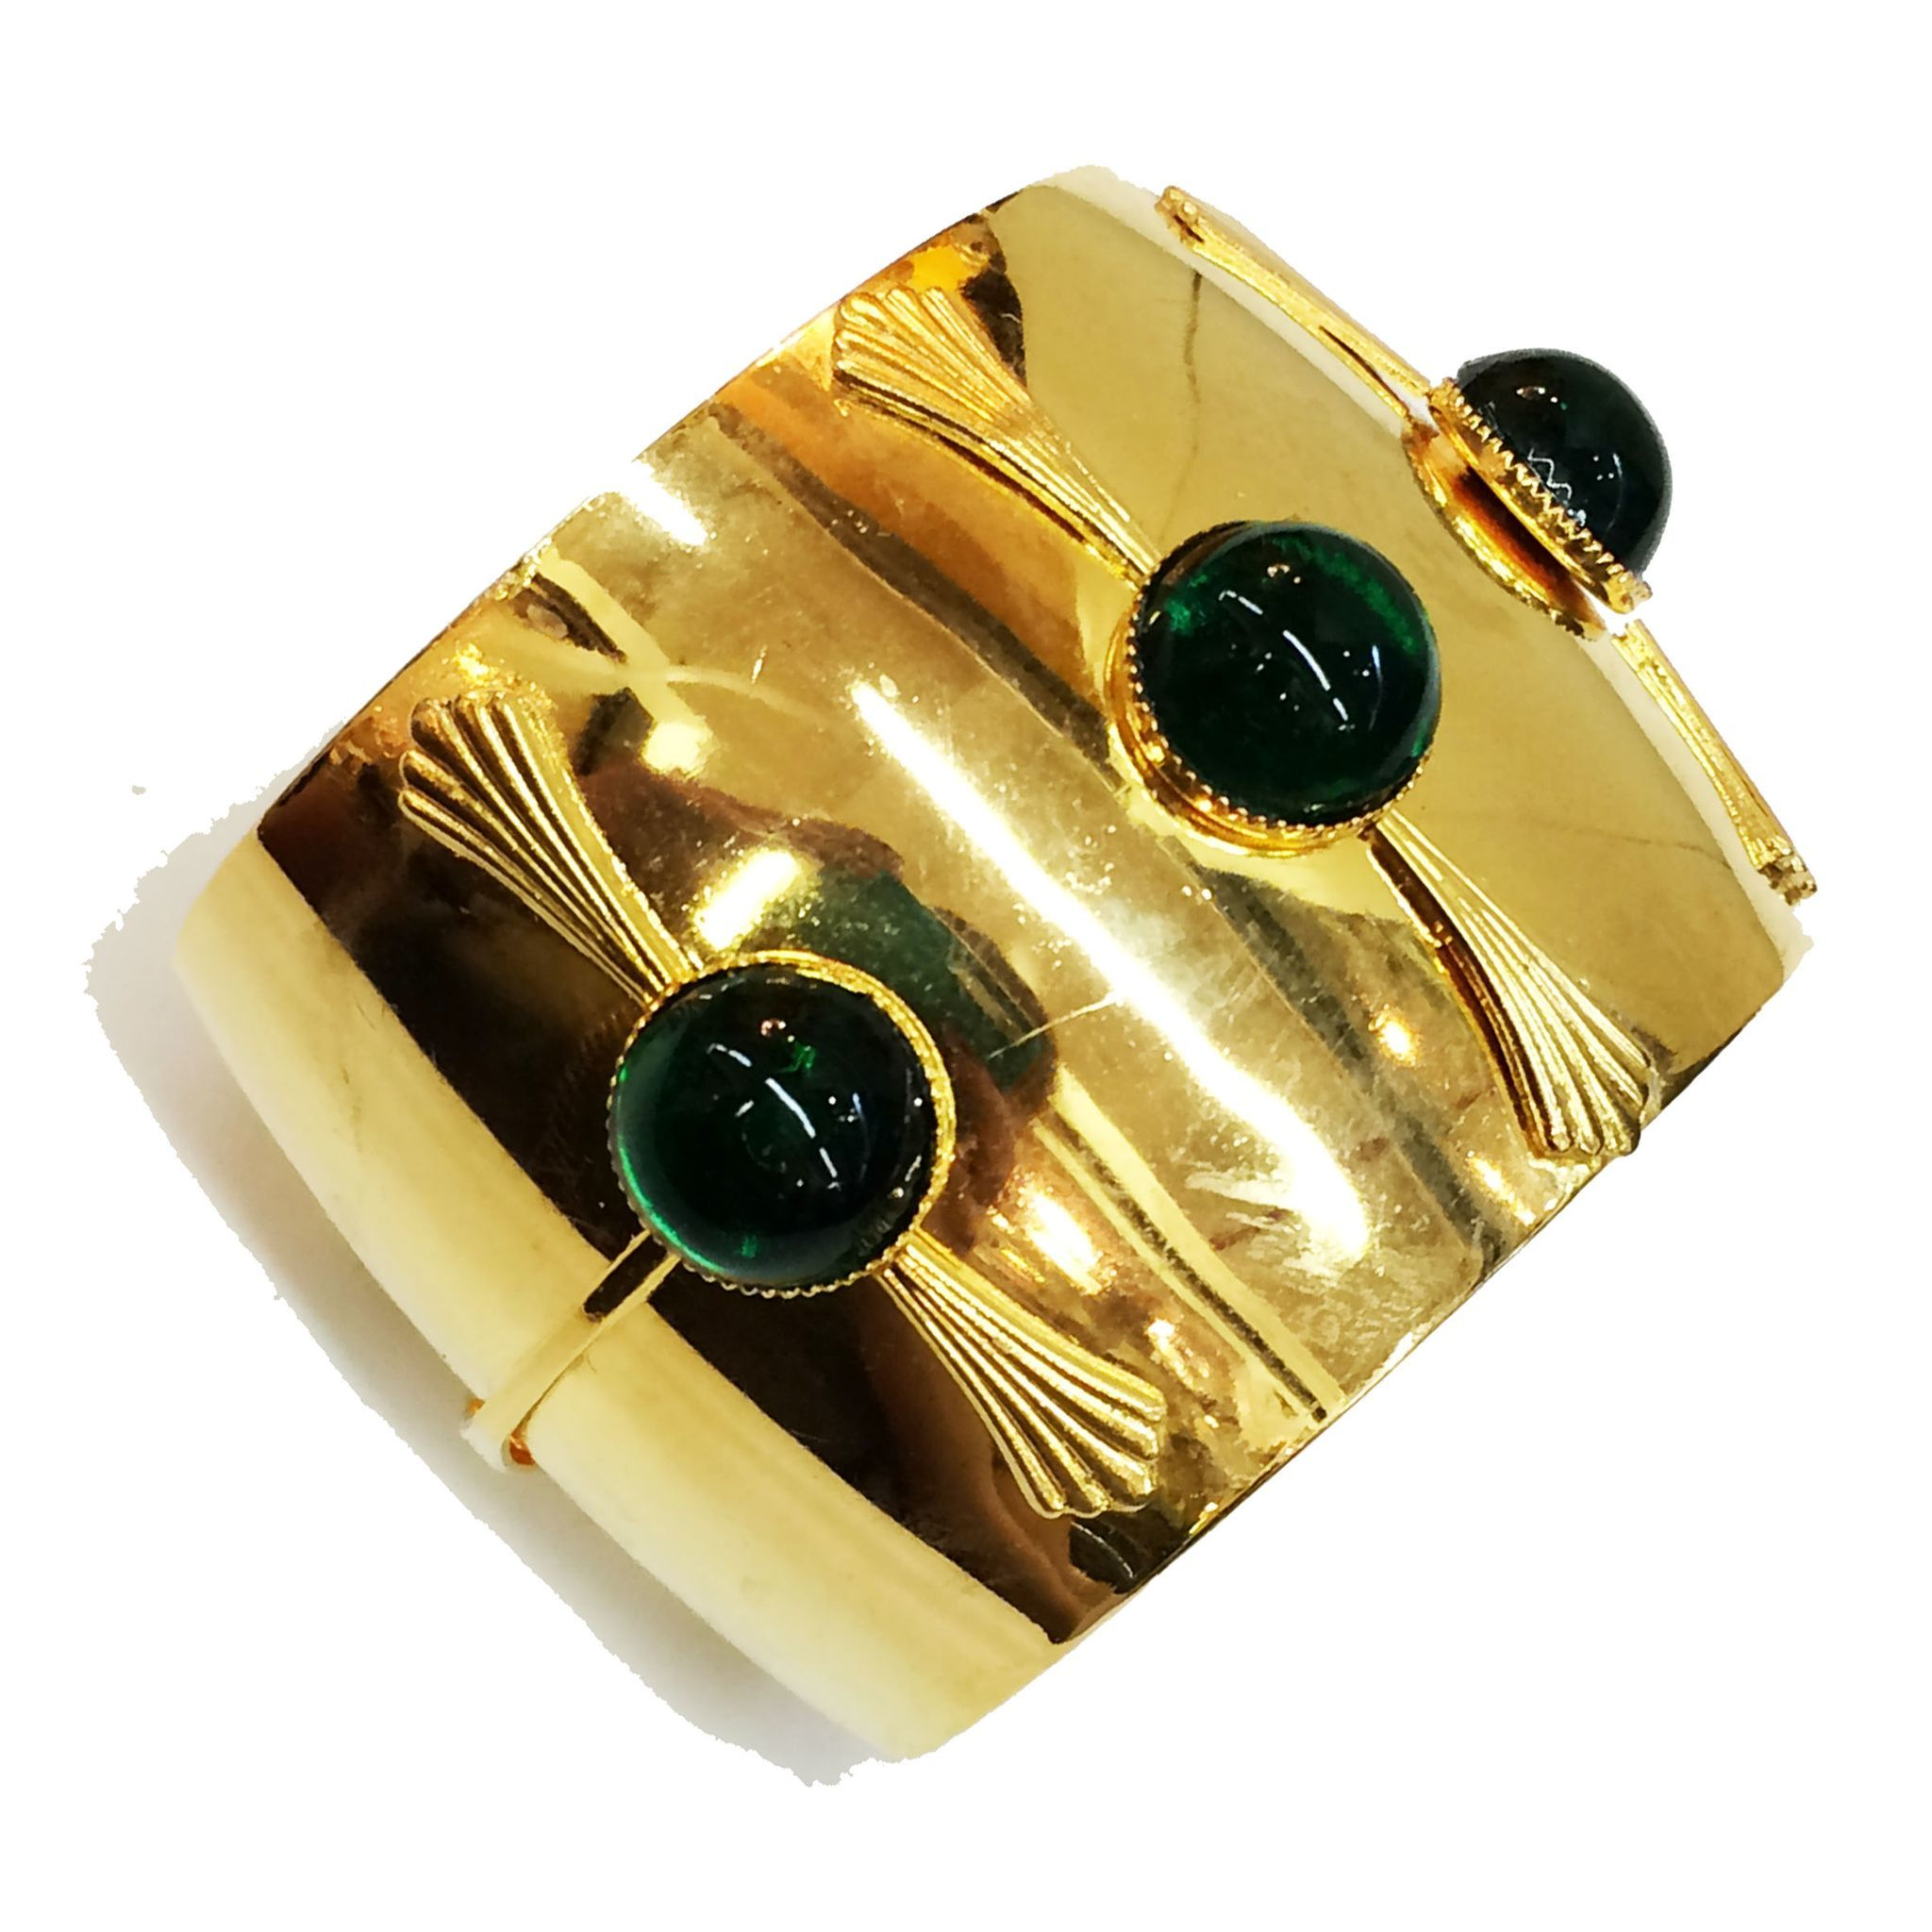 Gold Tone Metal Cuff Bracelet with Stalk Like Detailing and rich Green Cabochons